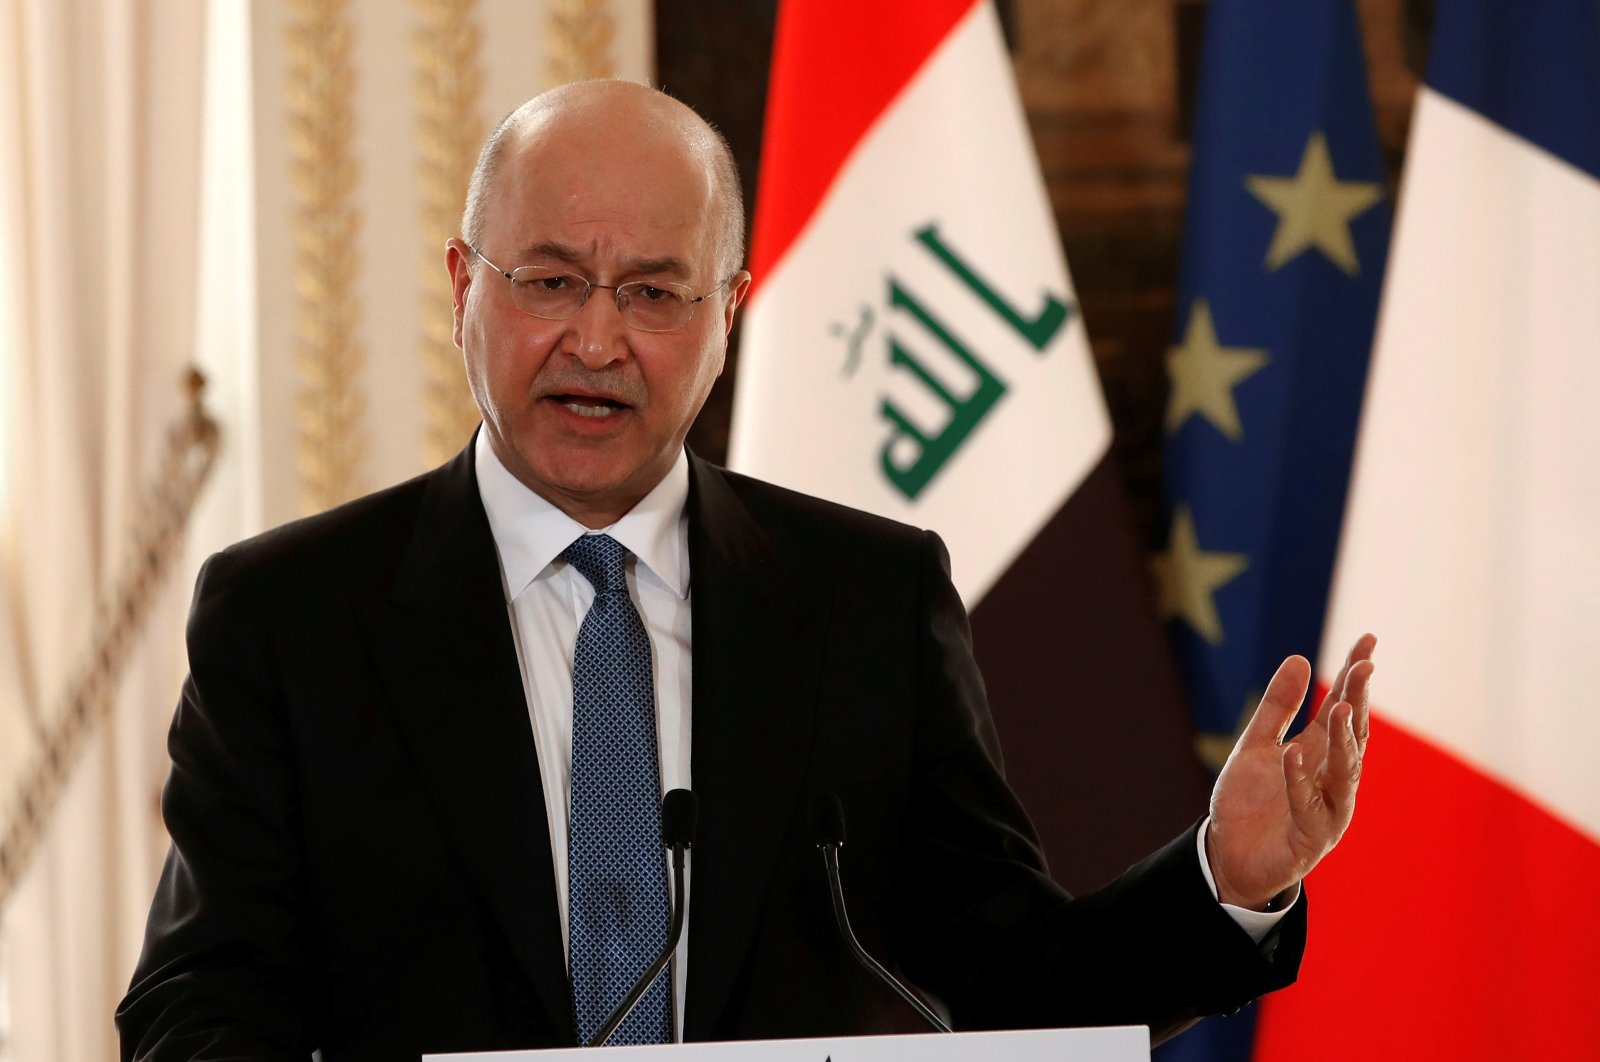 Iraqi President Barham Salih speaks during a news conference at the Elysee Palace in Paris, France, February 25, 2019. (Reuters File Photo)